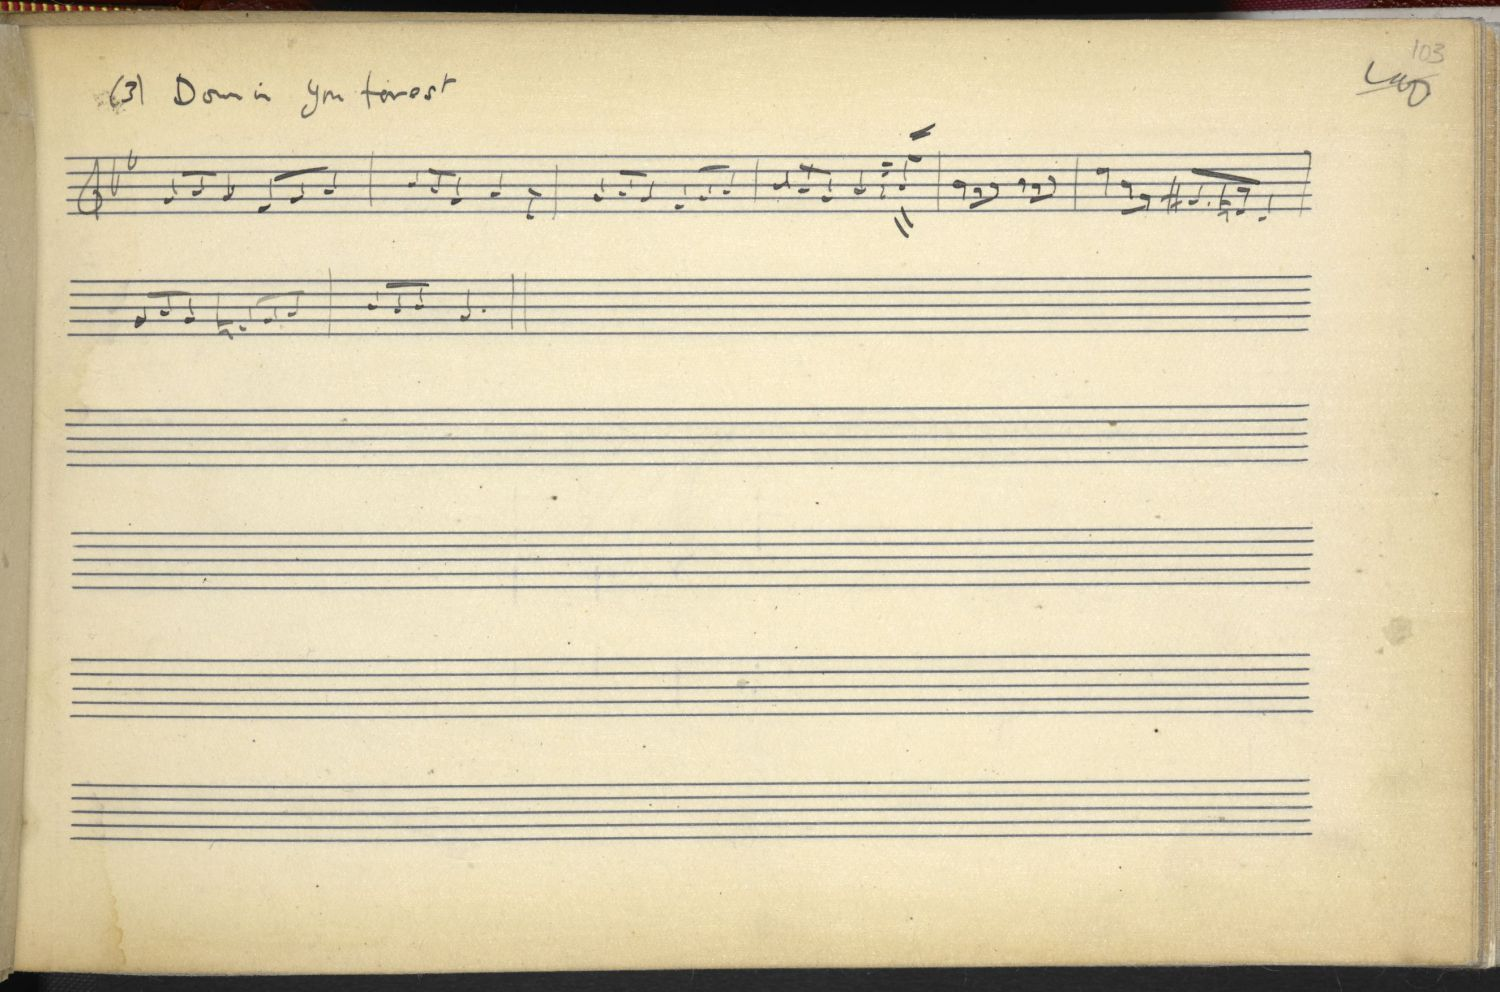 Down In Yon Forest, as noted by Ralph Vaughan Williams, 1908